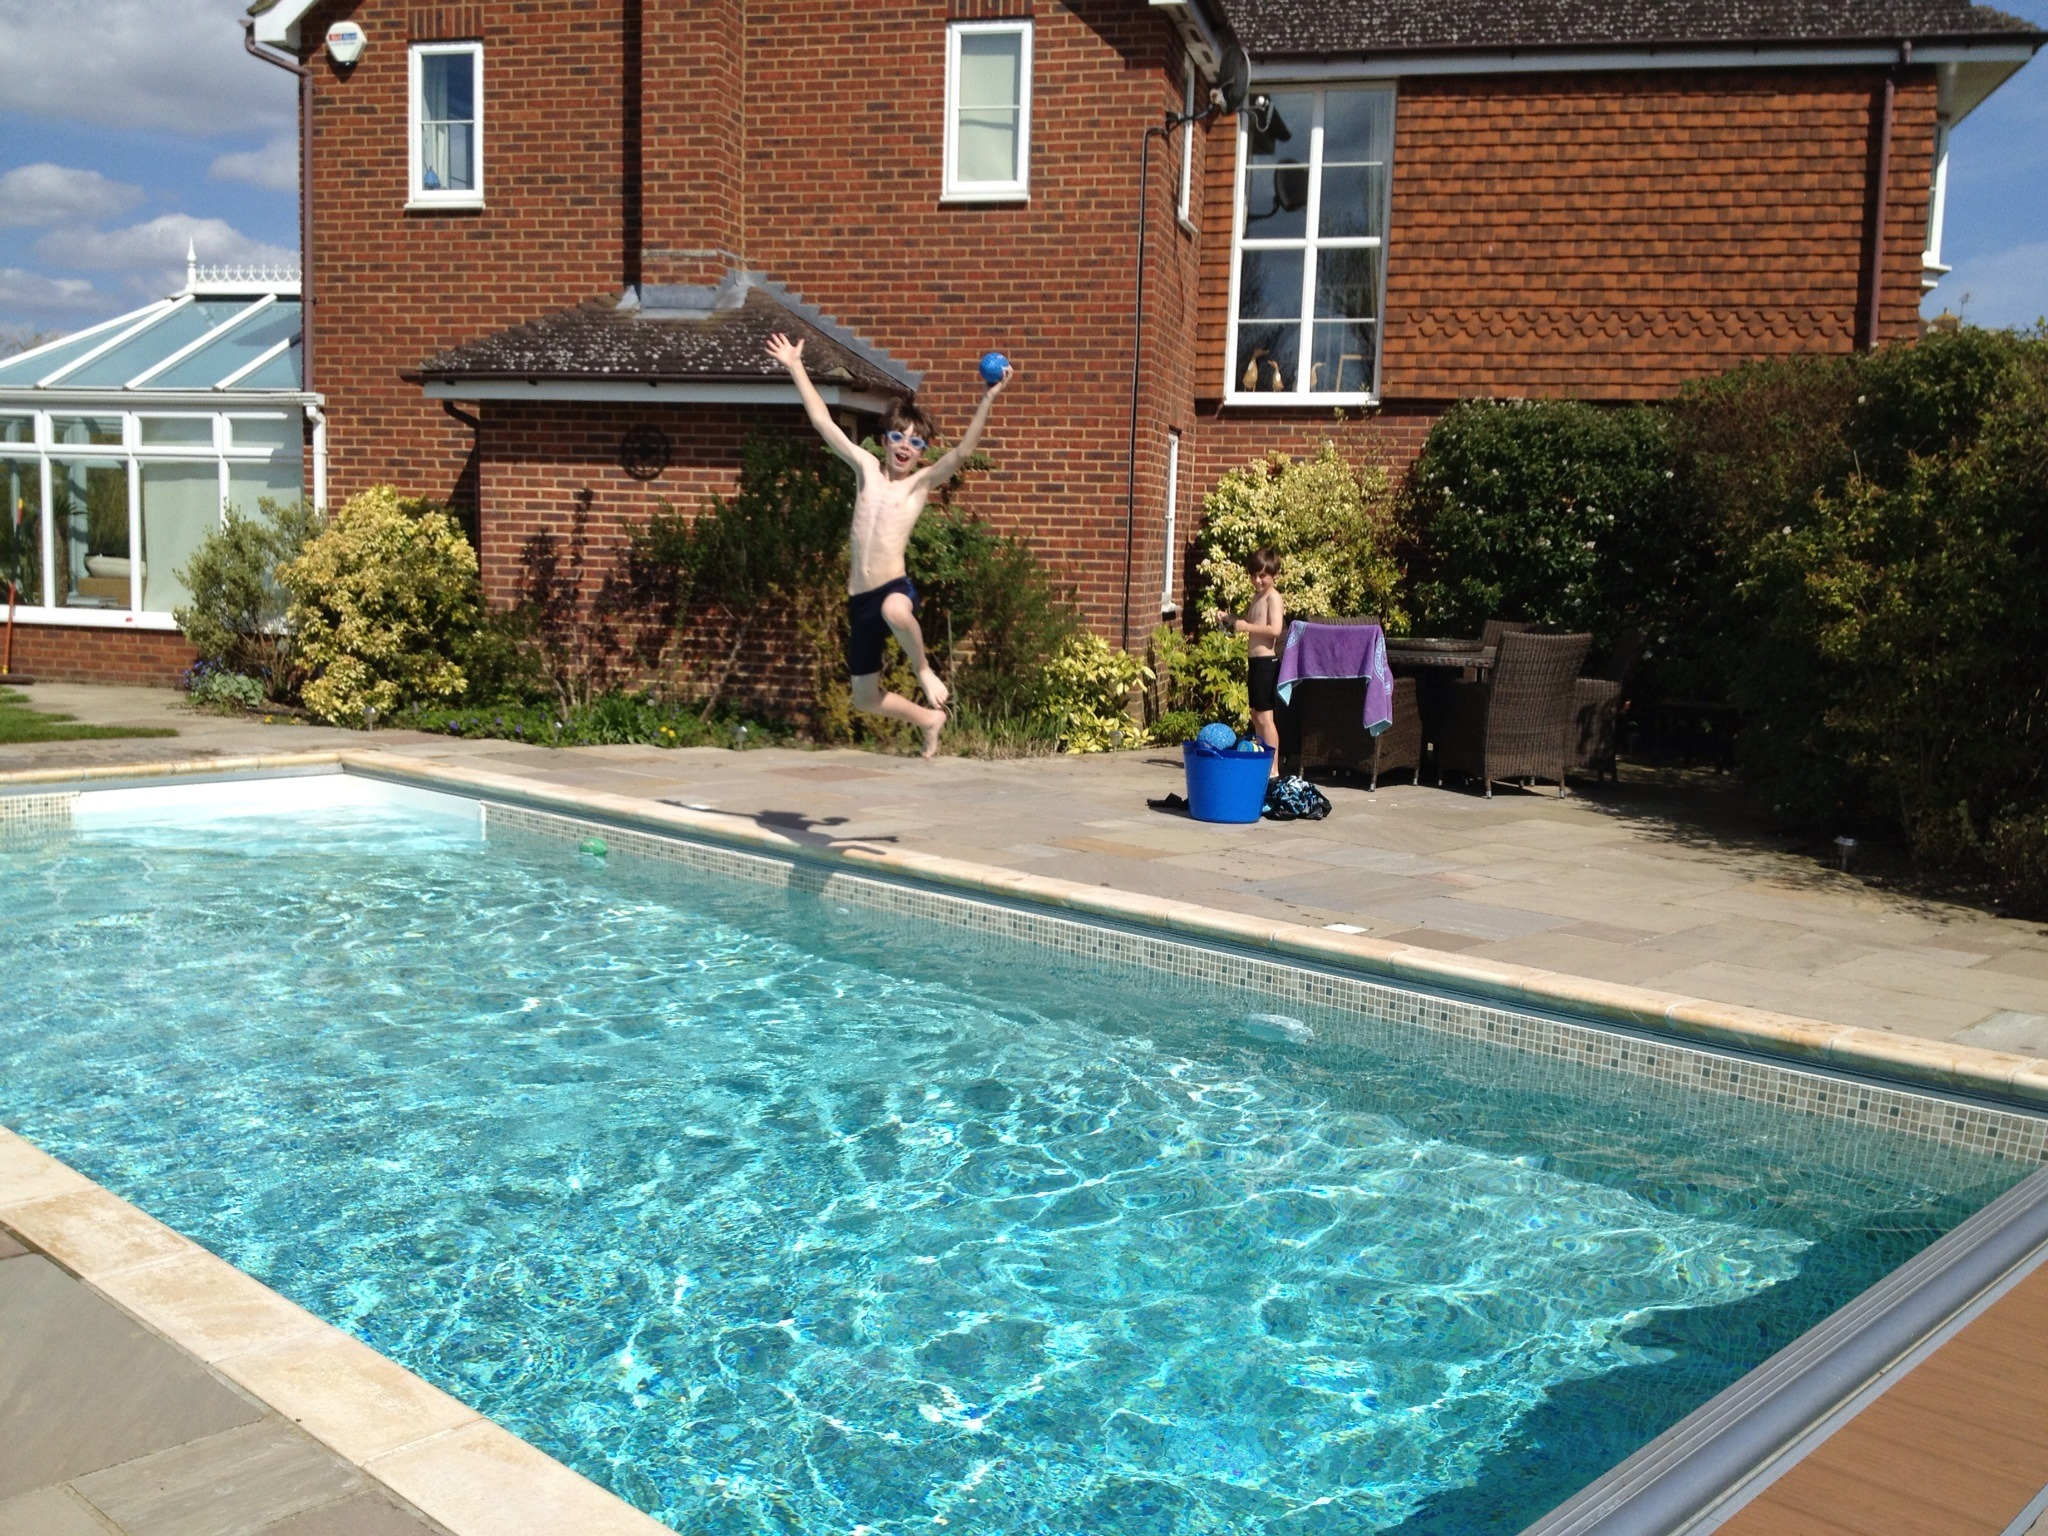 28 Best How Much To Renovate A Pool How To Replaster Or Remodel Your Pool Renovating Your